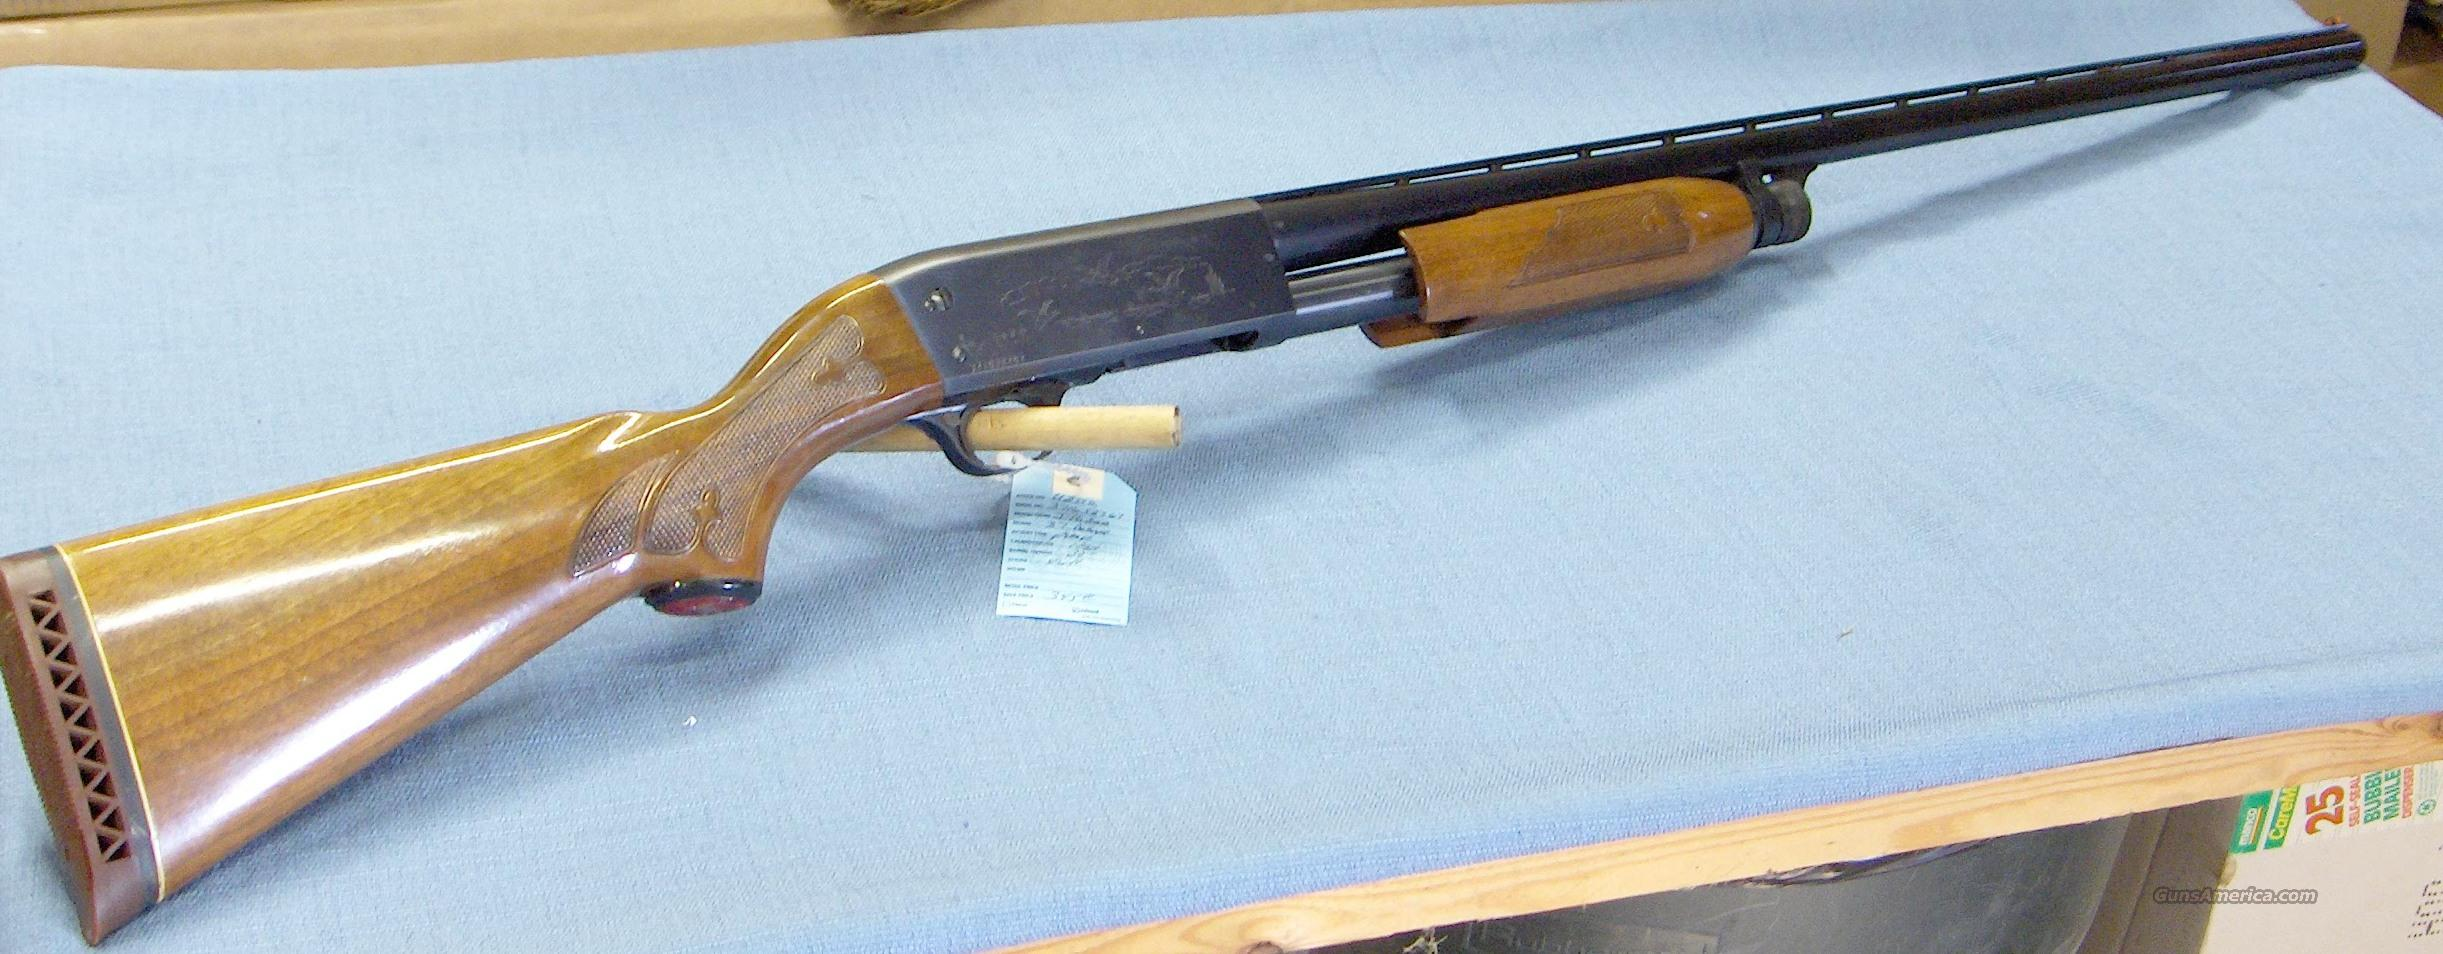 Ithaca Model 37 Featherlight  Guns > Shotguns > Ithaca Shotguns > Pump